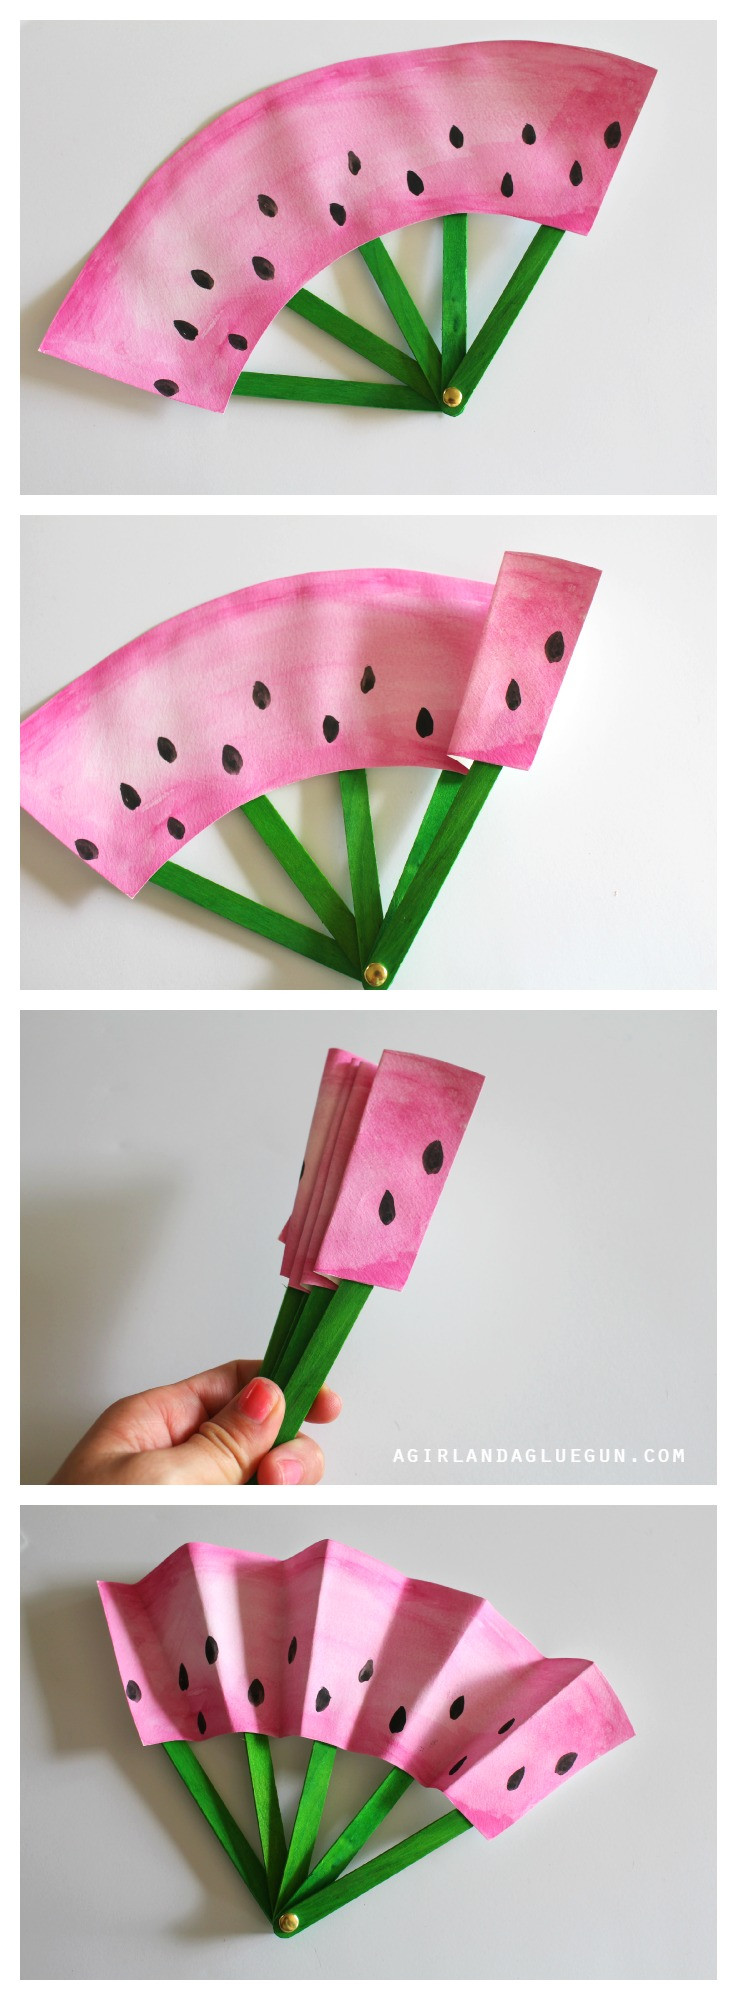 Best ideas about DIY Crafts For Kids . Save or Pin DIY Fruit Fans Kids Craft The Idea Room Now.